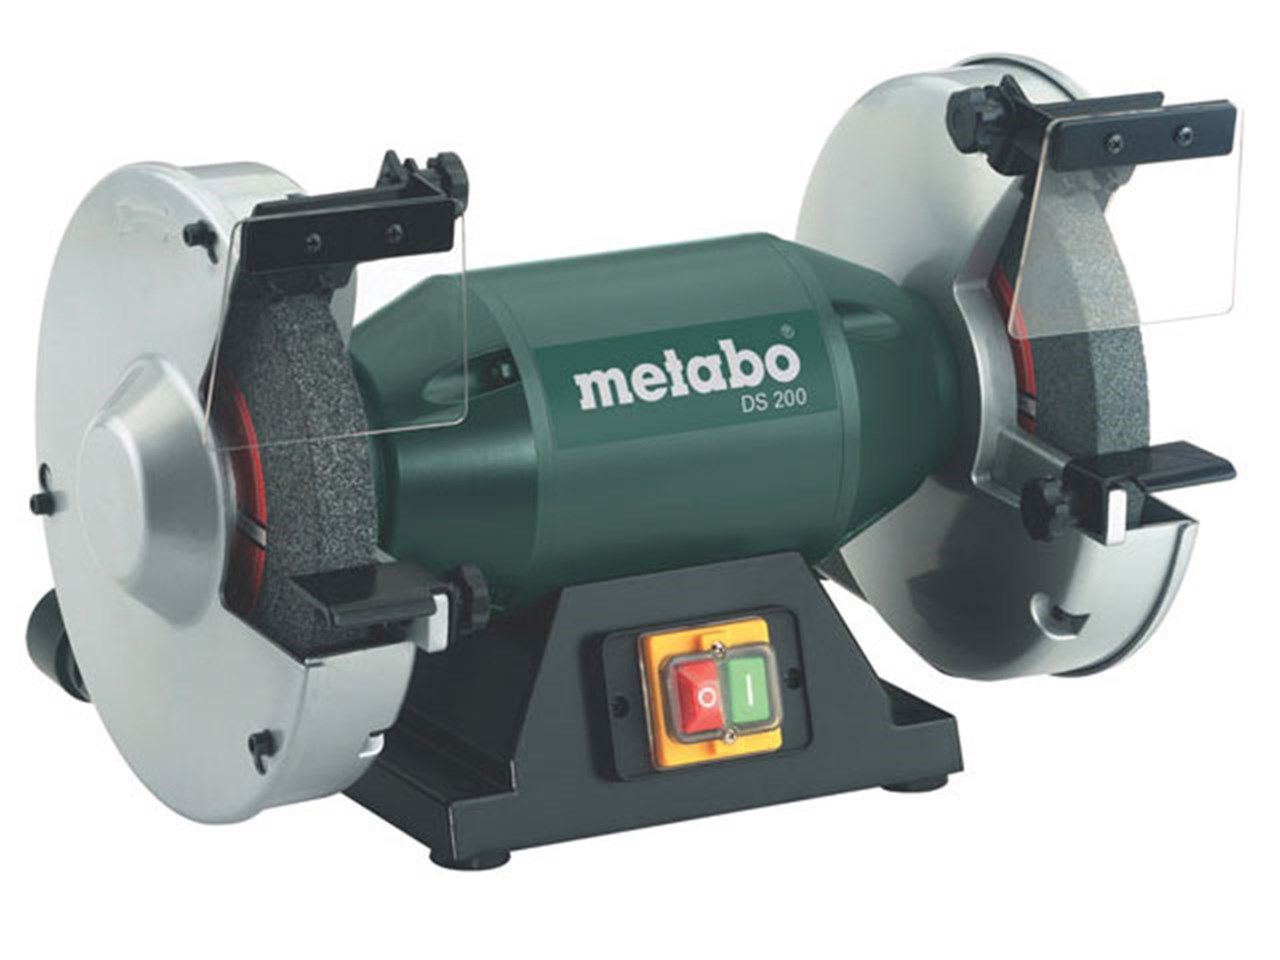 Surprising Metabo Ds200 2 240V 600W 200Mm Bench Grinder Gmtry Best Dining Table And Chair Ideas Images Gmtryco